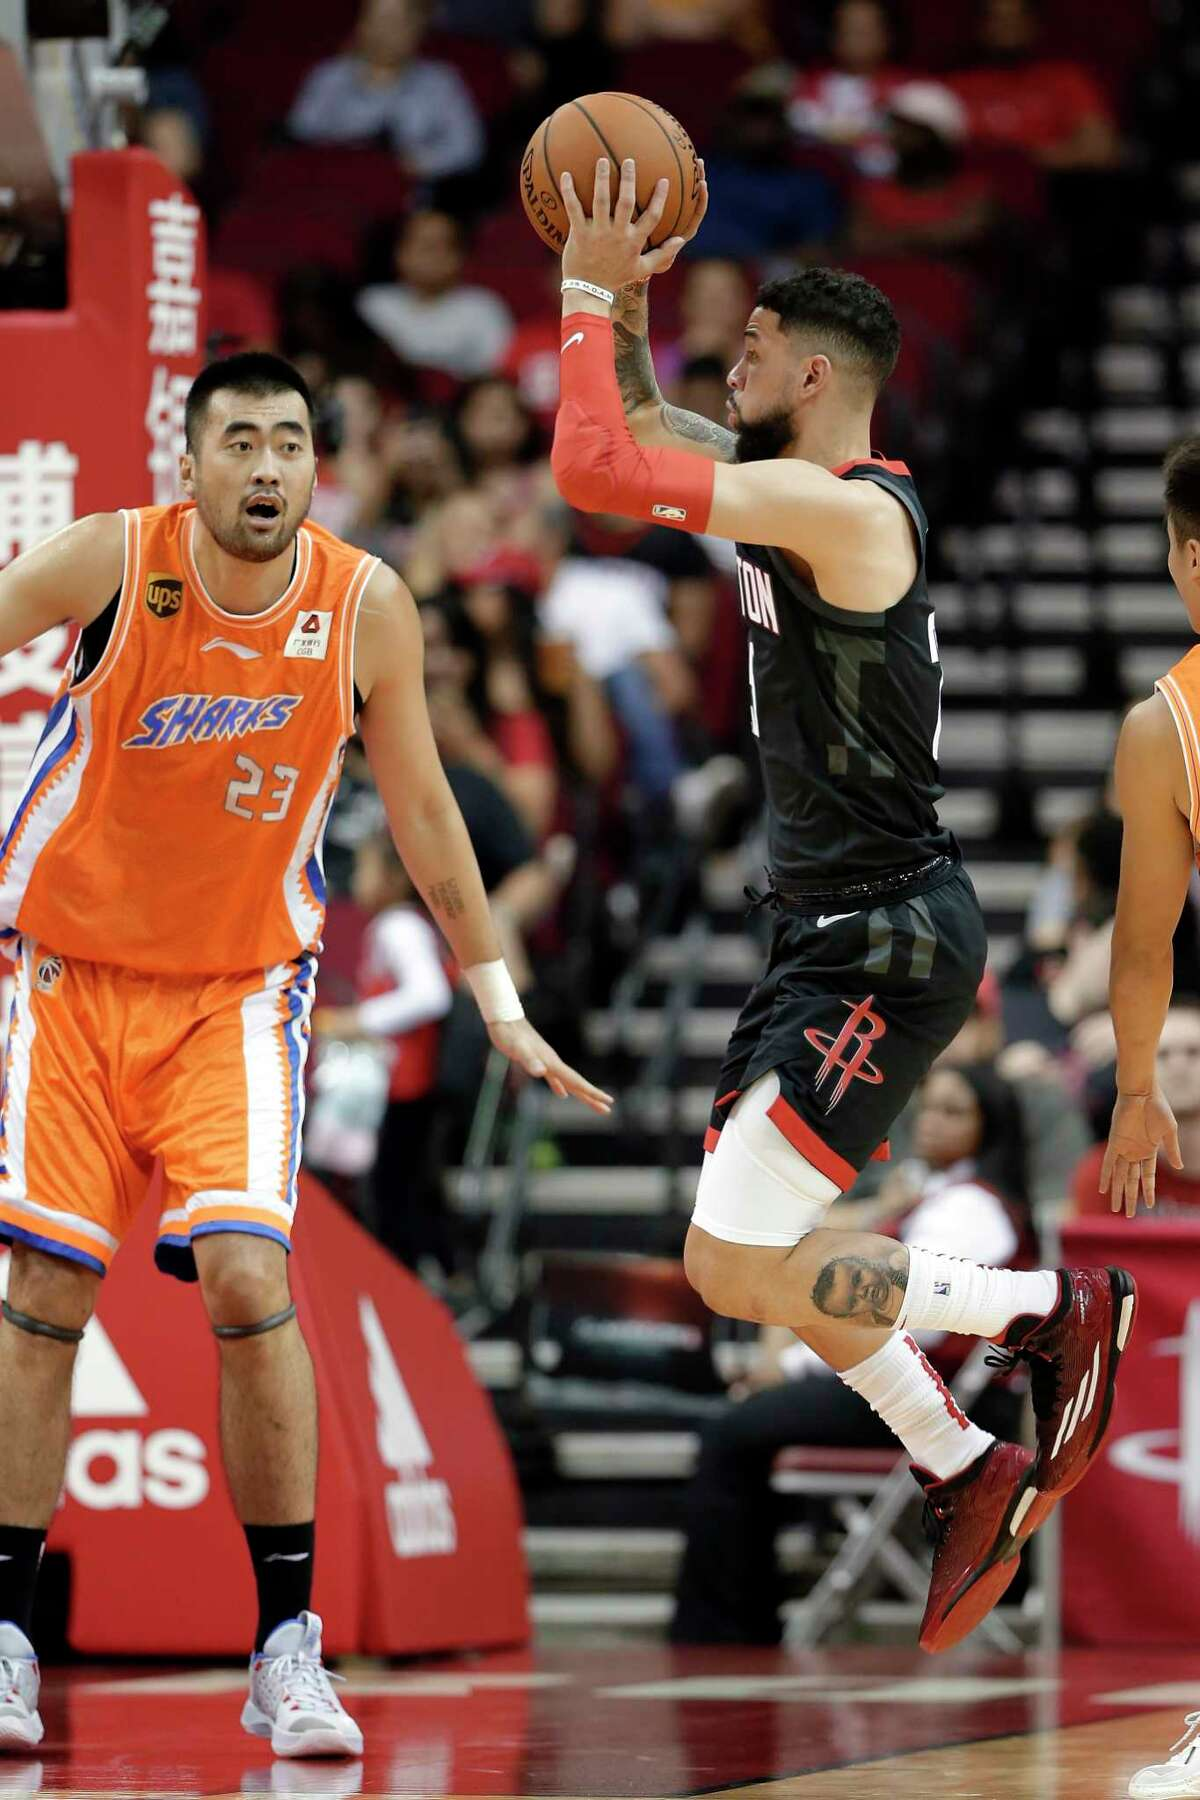 Shanghai Sharks center Zhang Zhaoxu (23) watches as Houston Rockets guard Austin Rivers, right, passes the ball during the first half of an NBA basketball preseason game Monday, Sept. 30, 2019, in Houston. (AP Photo/Michael Wyke)